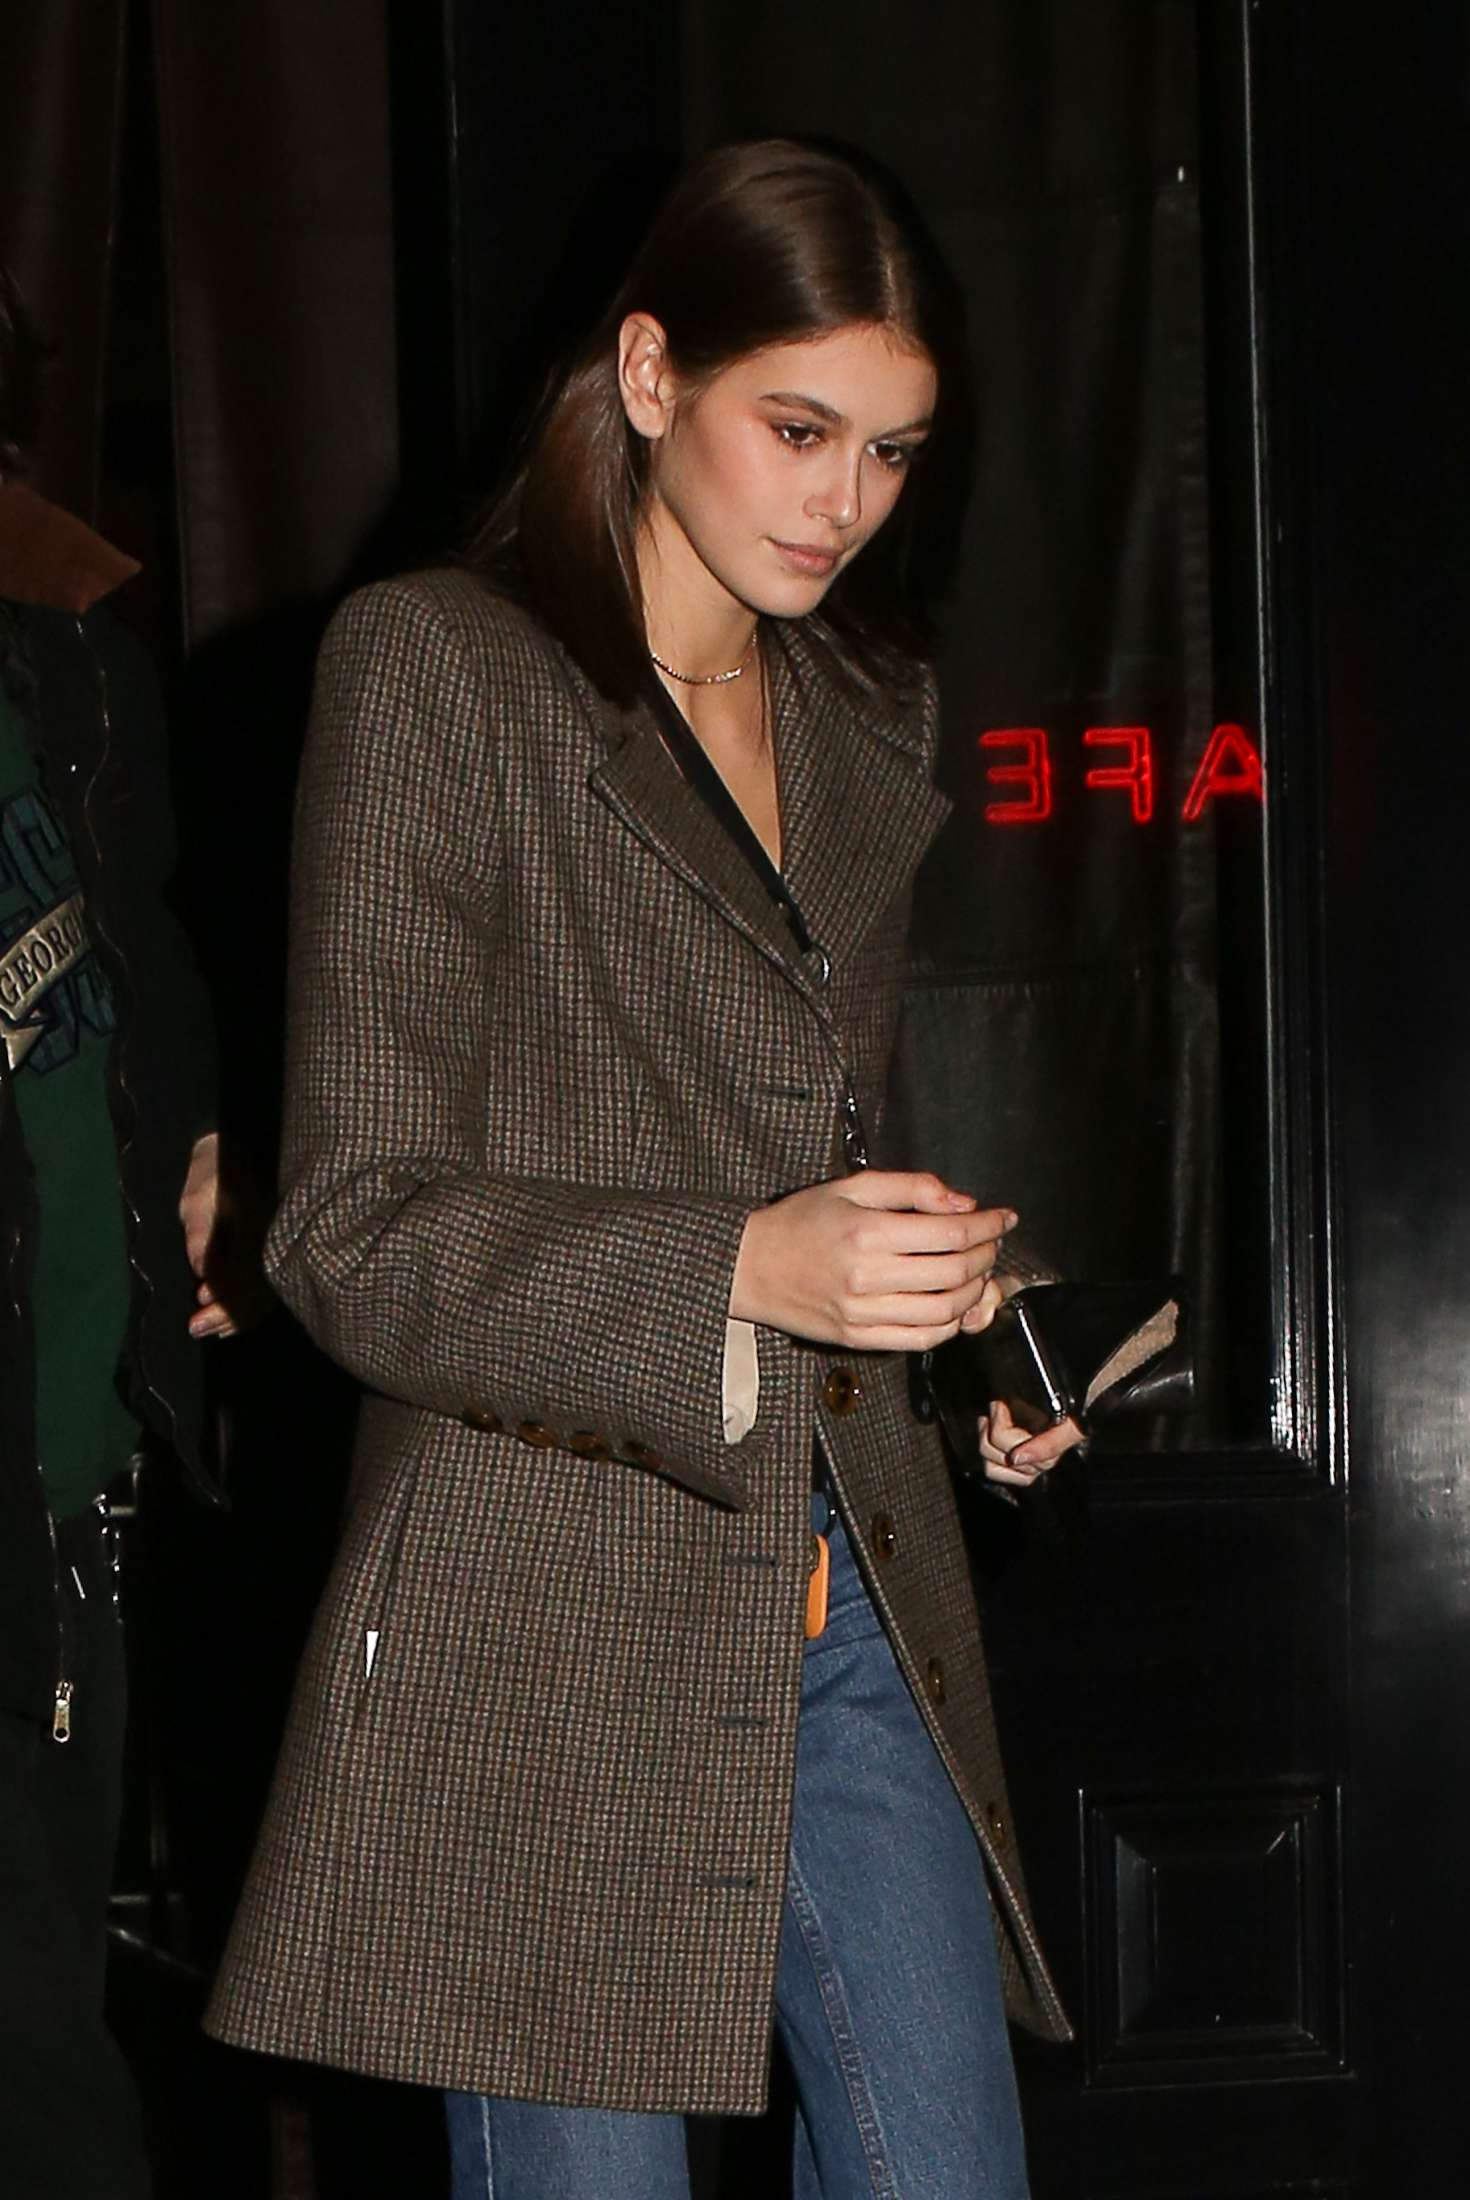 Kaia Gerber – Leaving the Mercer hotel in New York